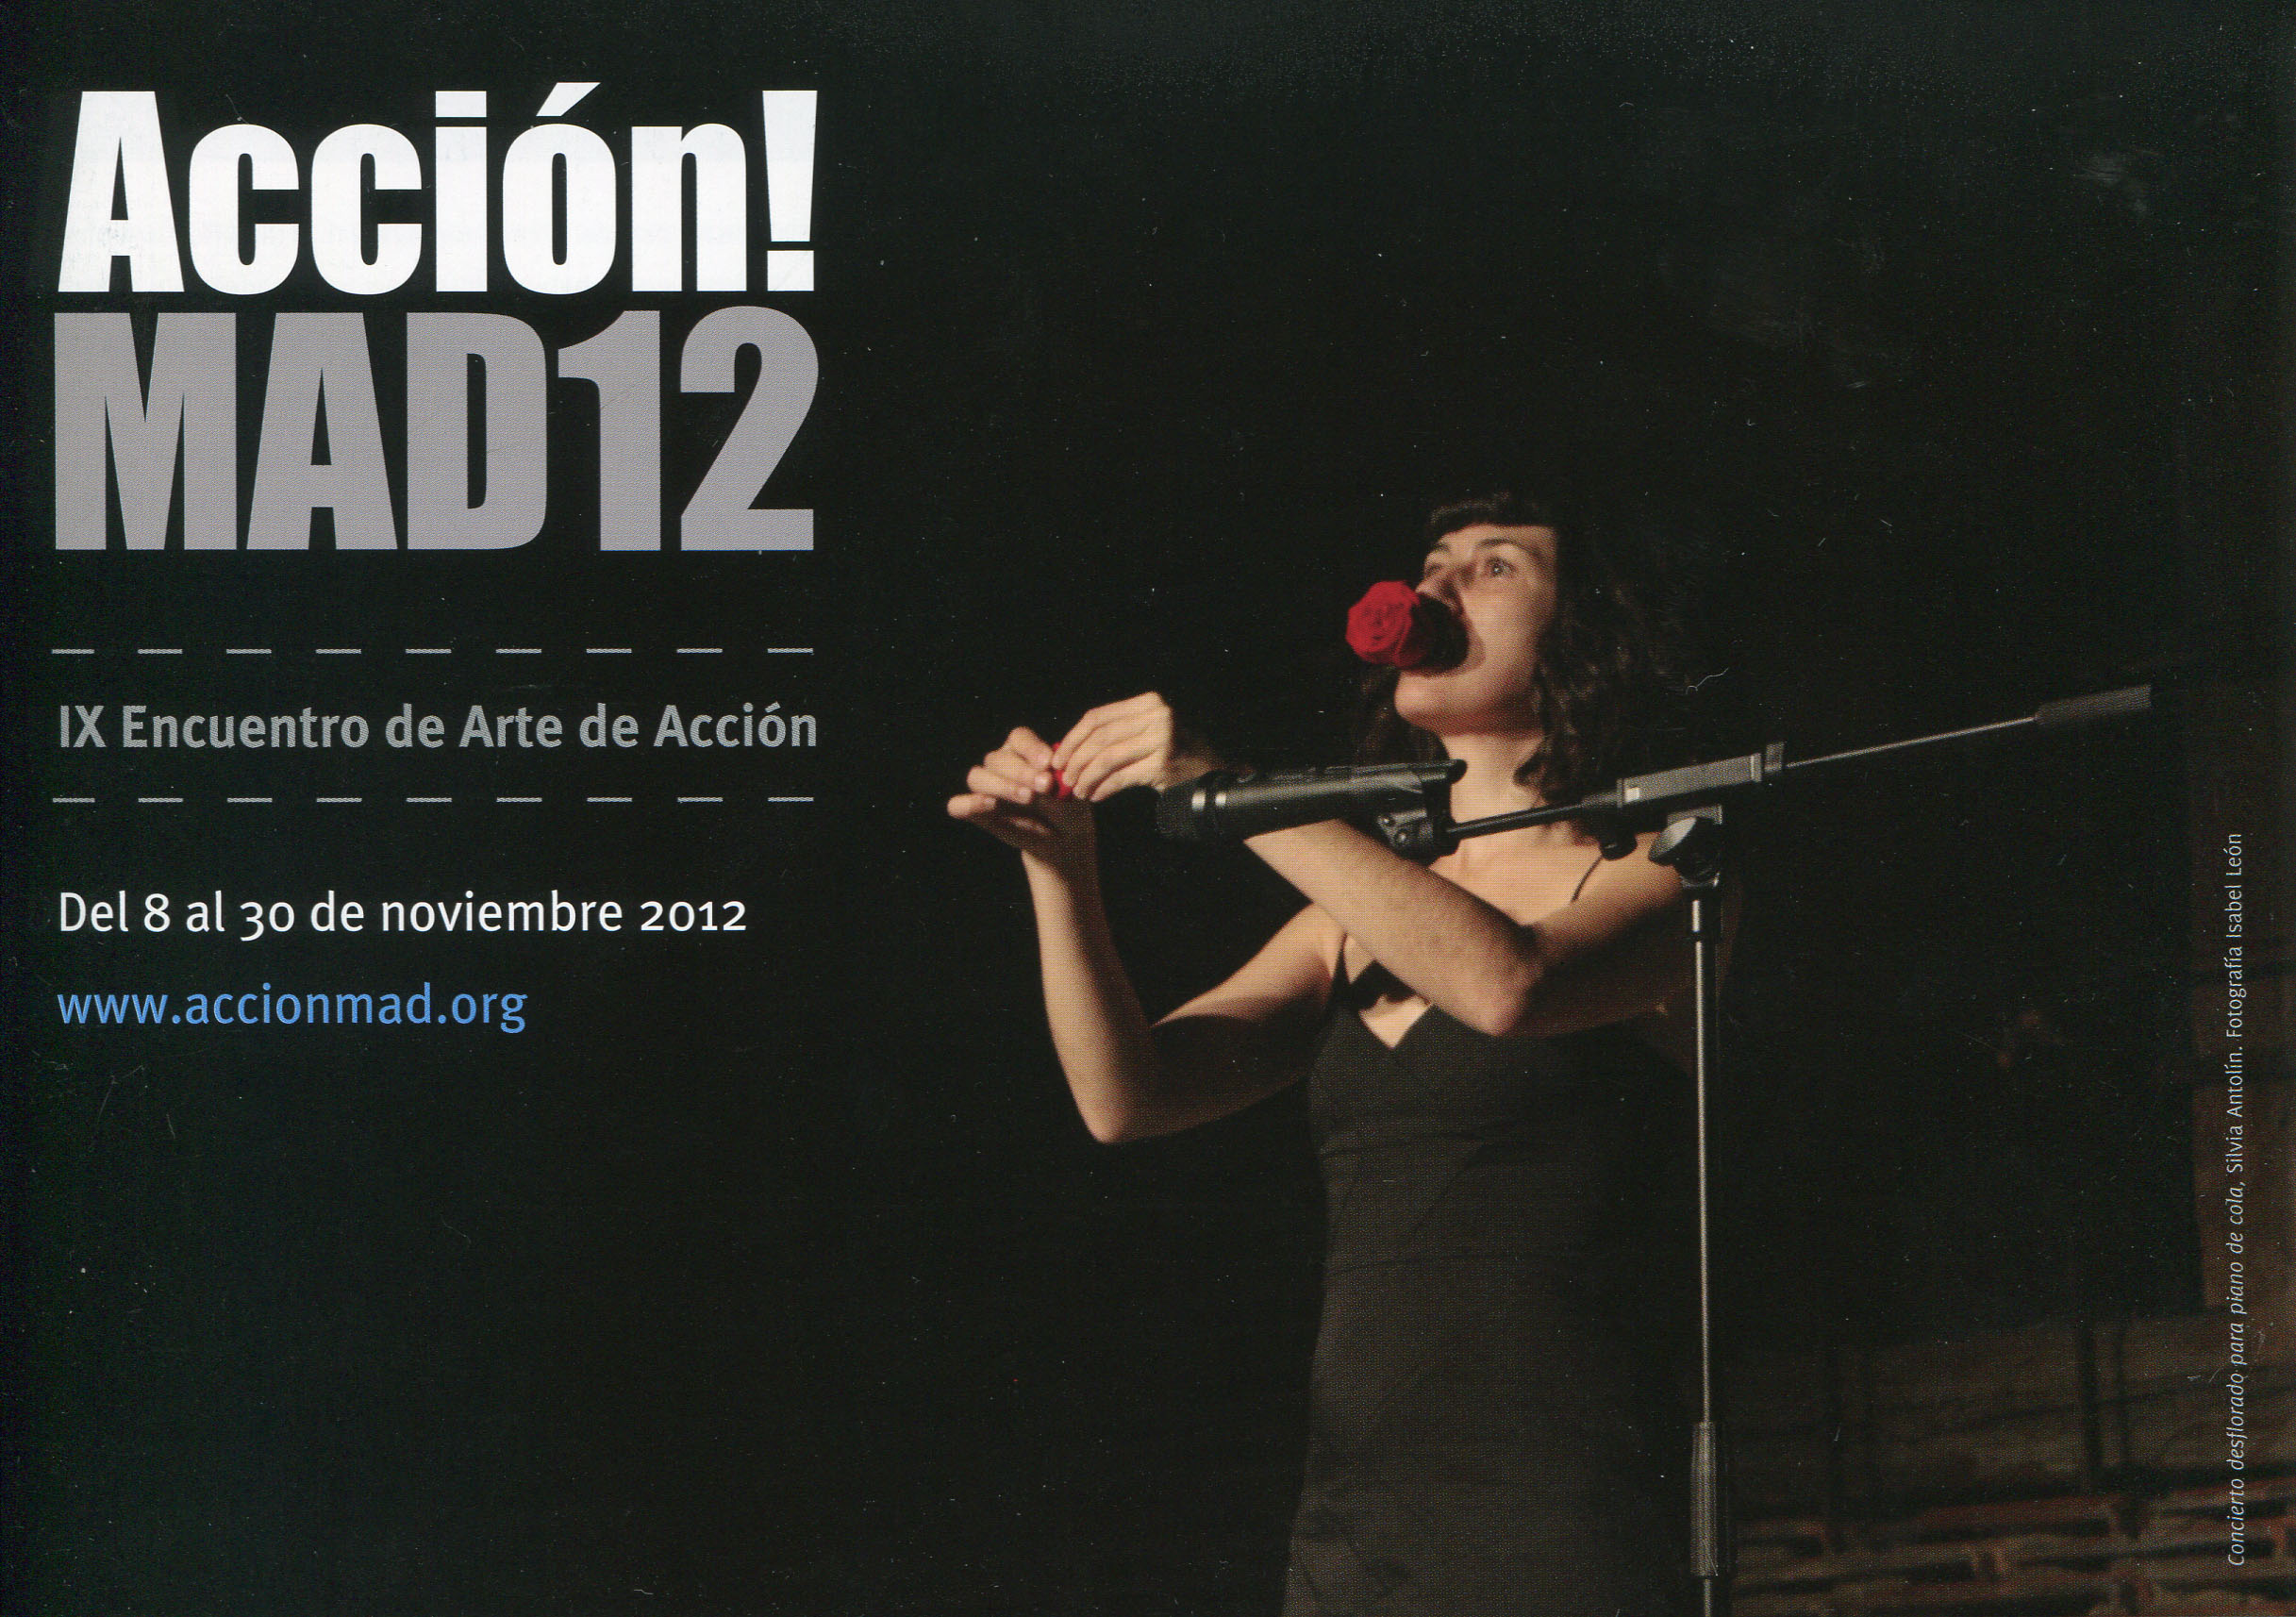 AcciónMAD12